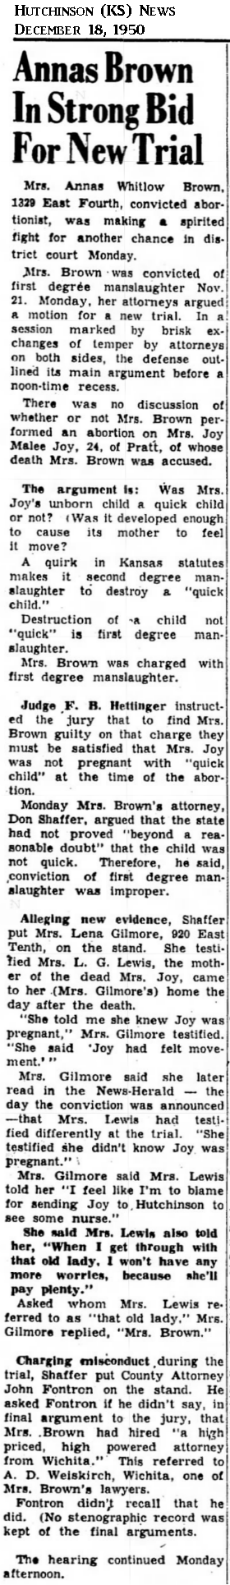 JoyJoyHutchinsonKSNews18Dec1950.png